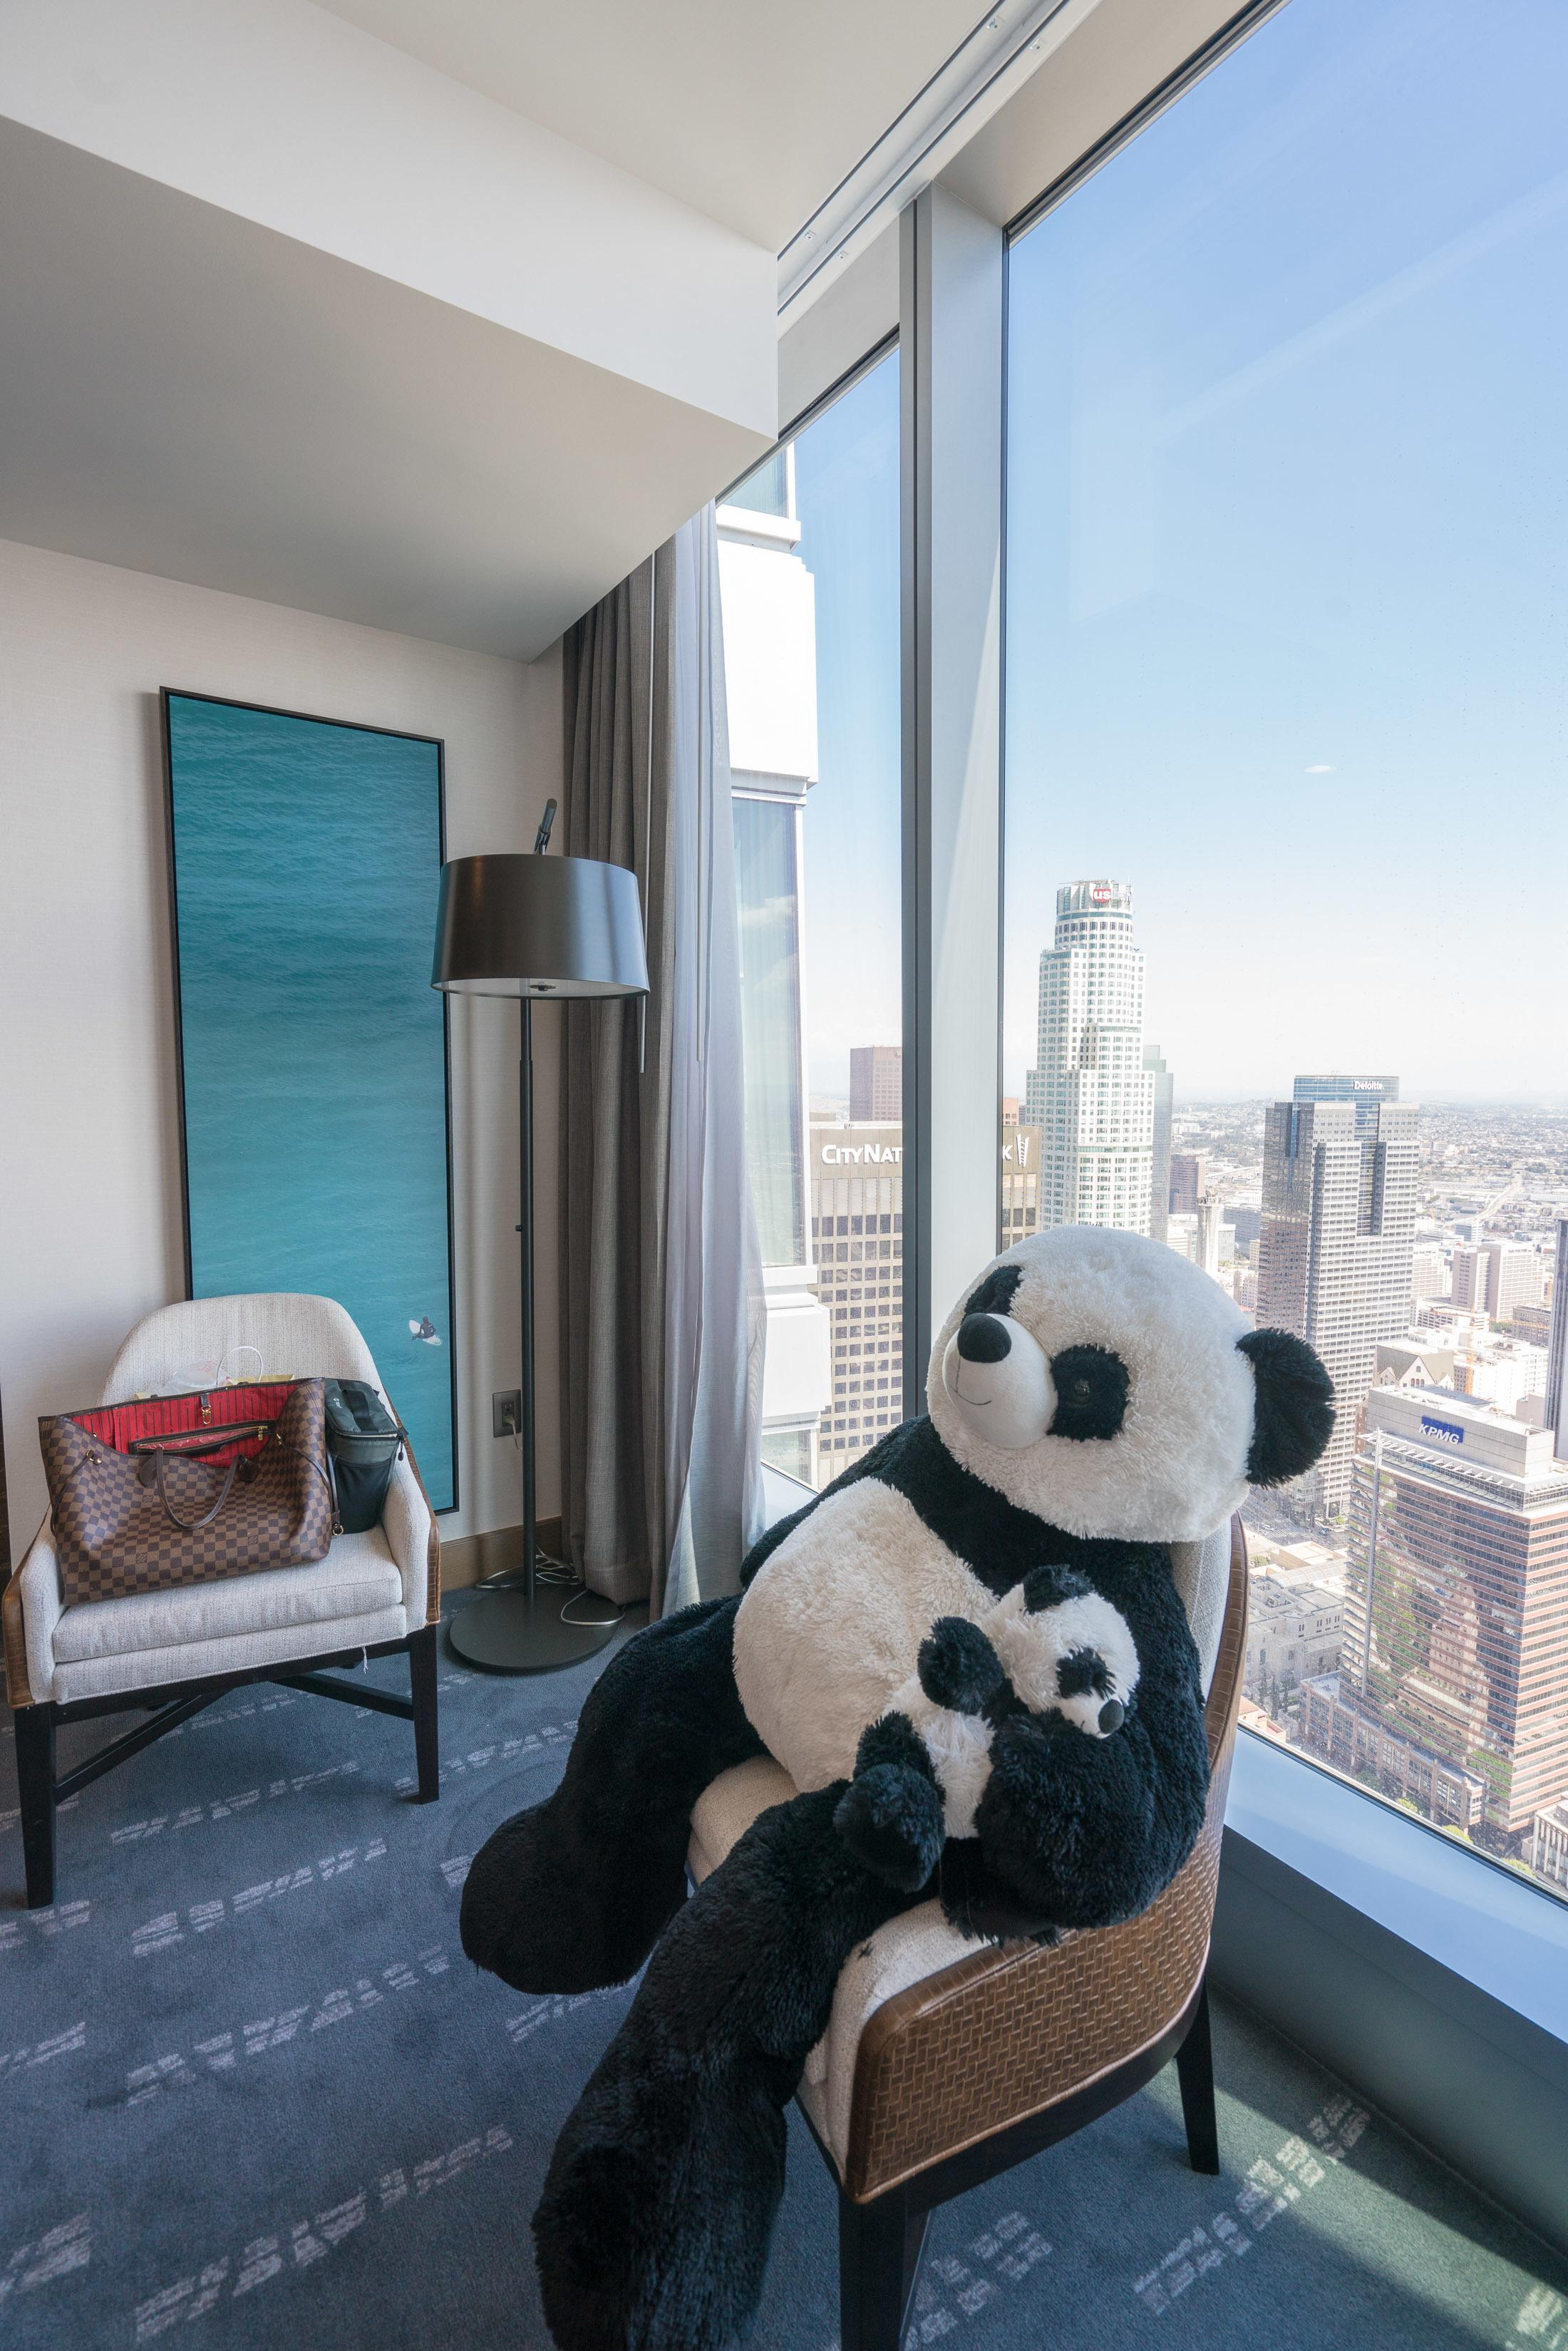 Giant panda sitting in a chair with a view of downtown Los Angeles behind it.